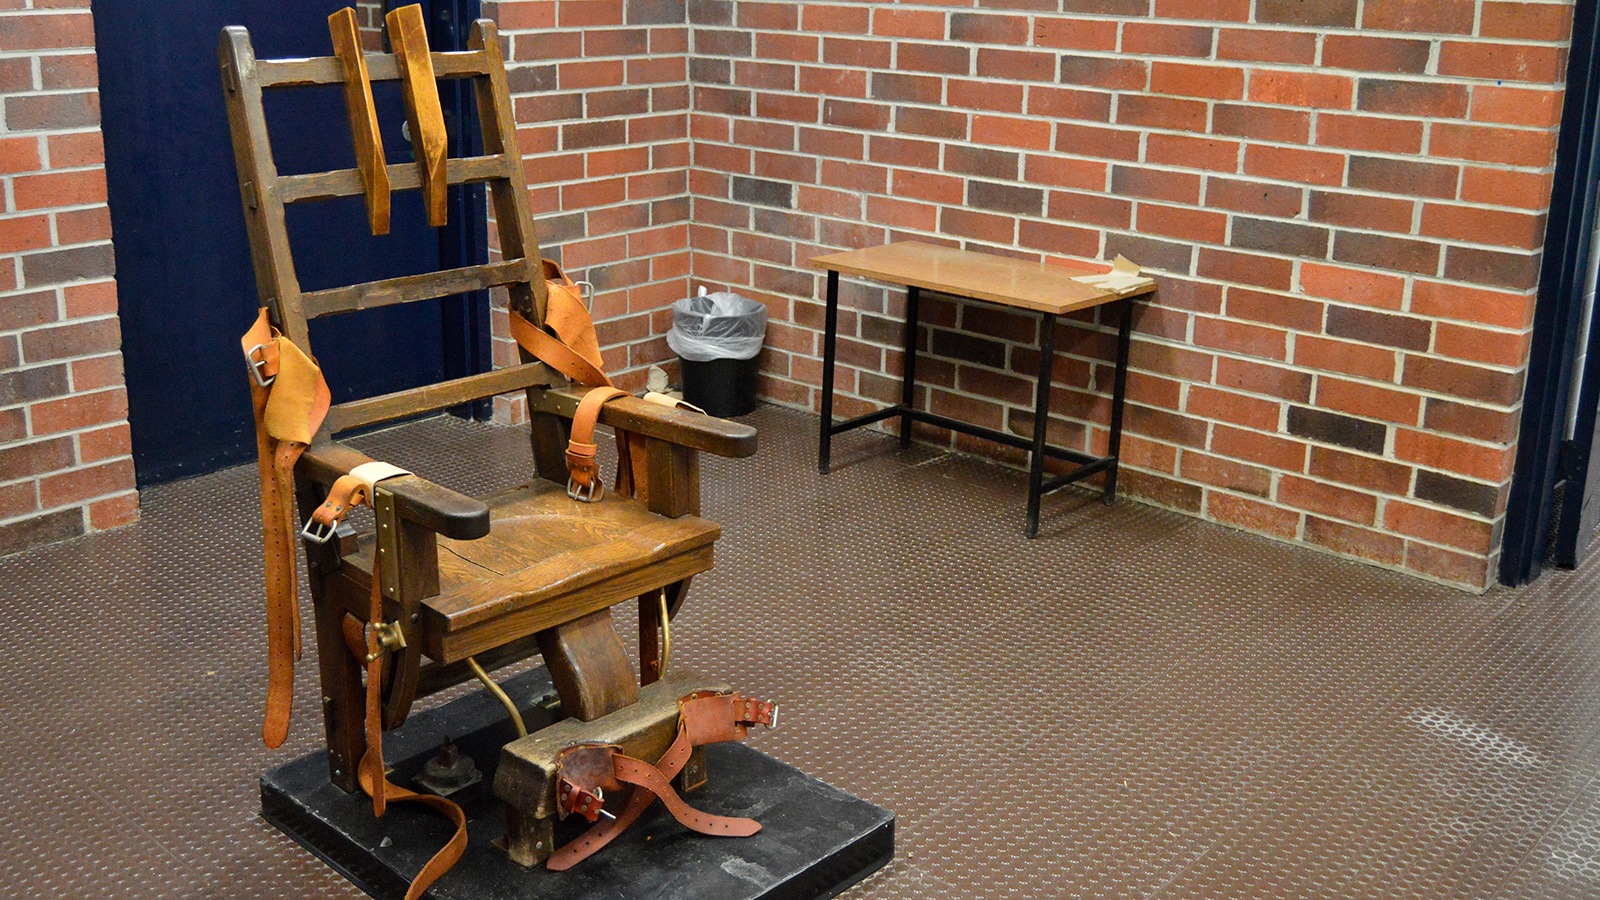 South Carolina court halts executions until the state's new firing squad option is finalized